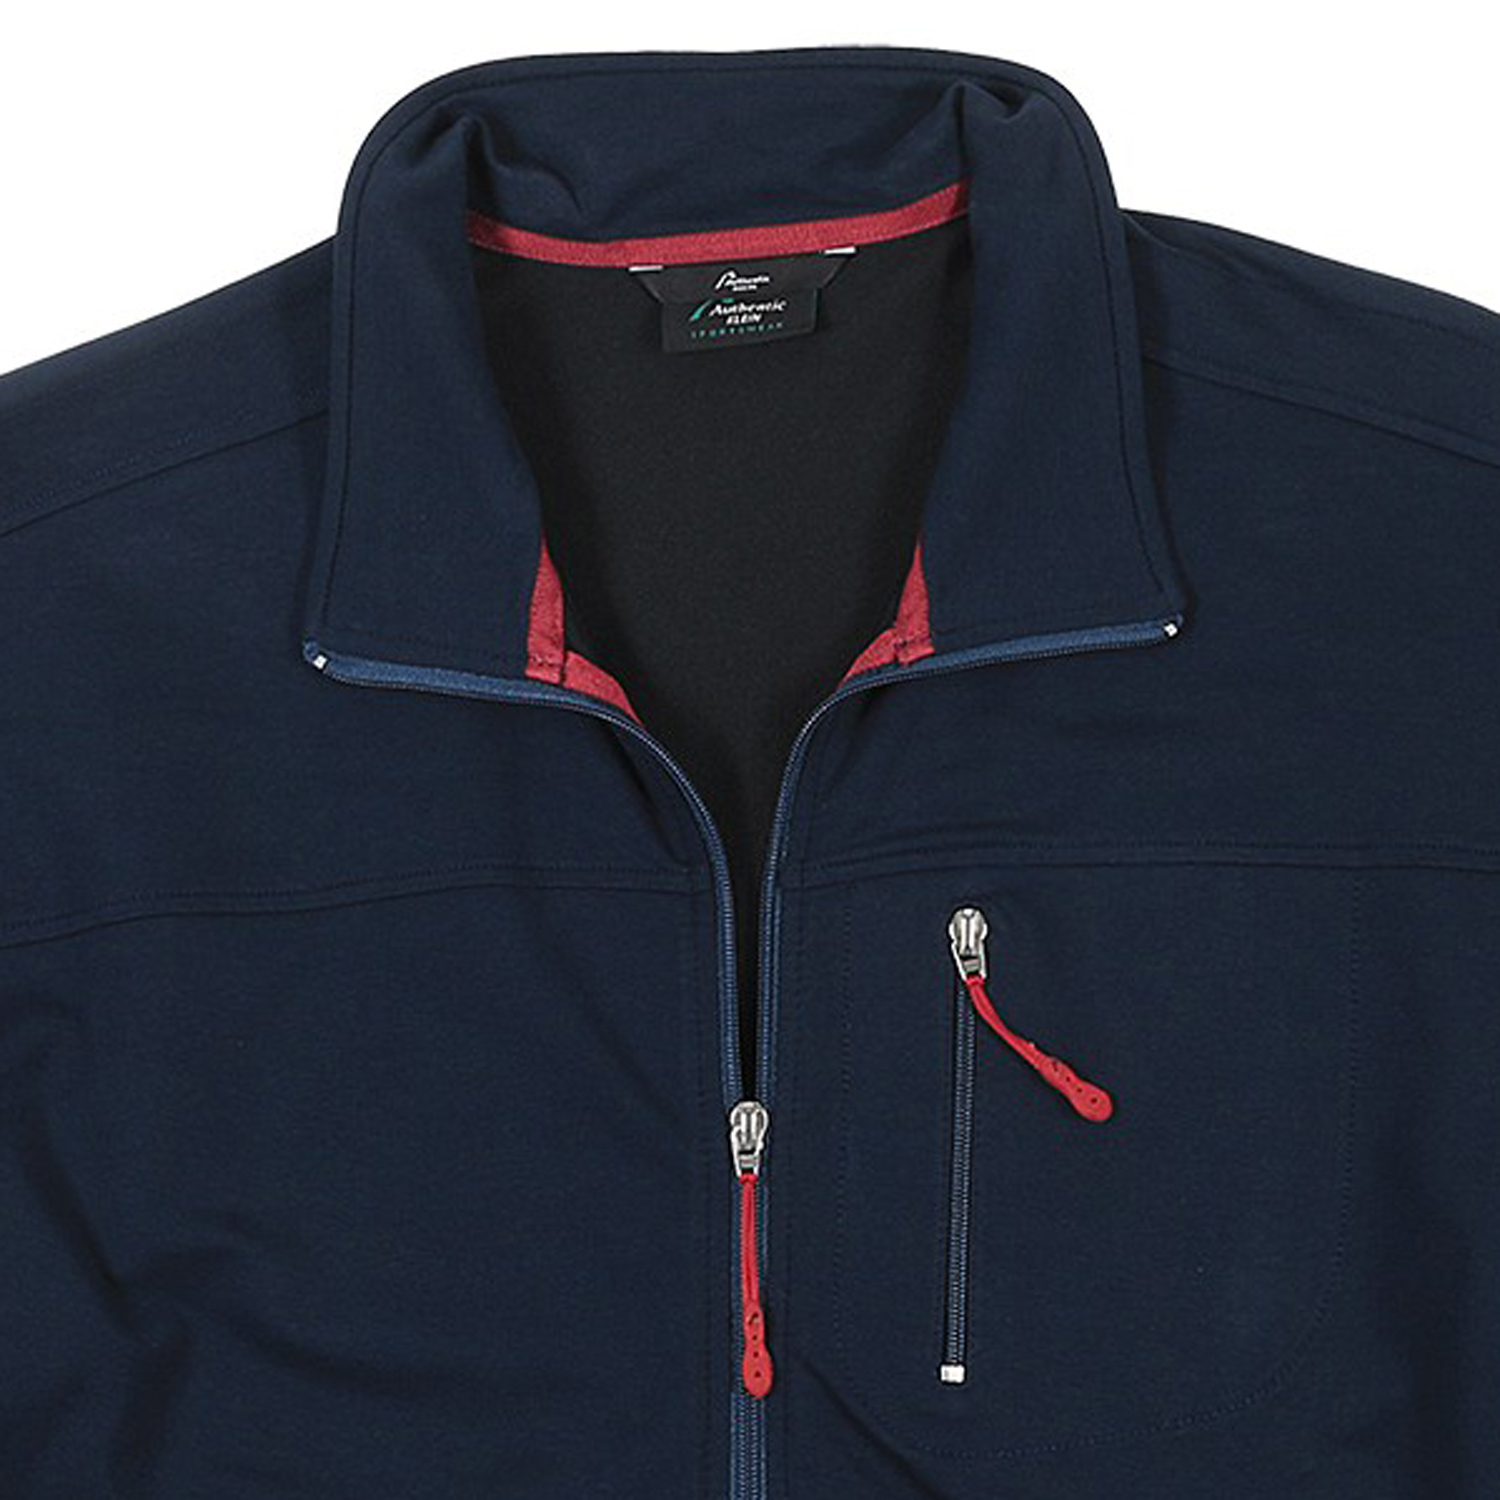 Detail Image to Sports and leisure jacket in blue, plus sizes by AUTHENTIC KLEIN